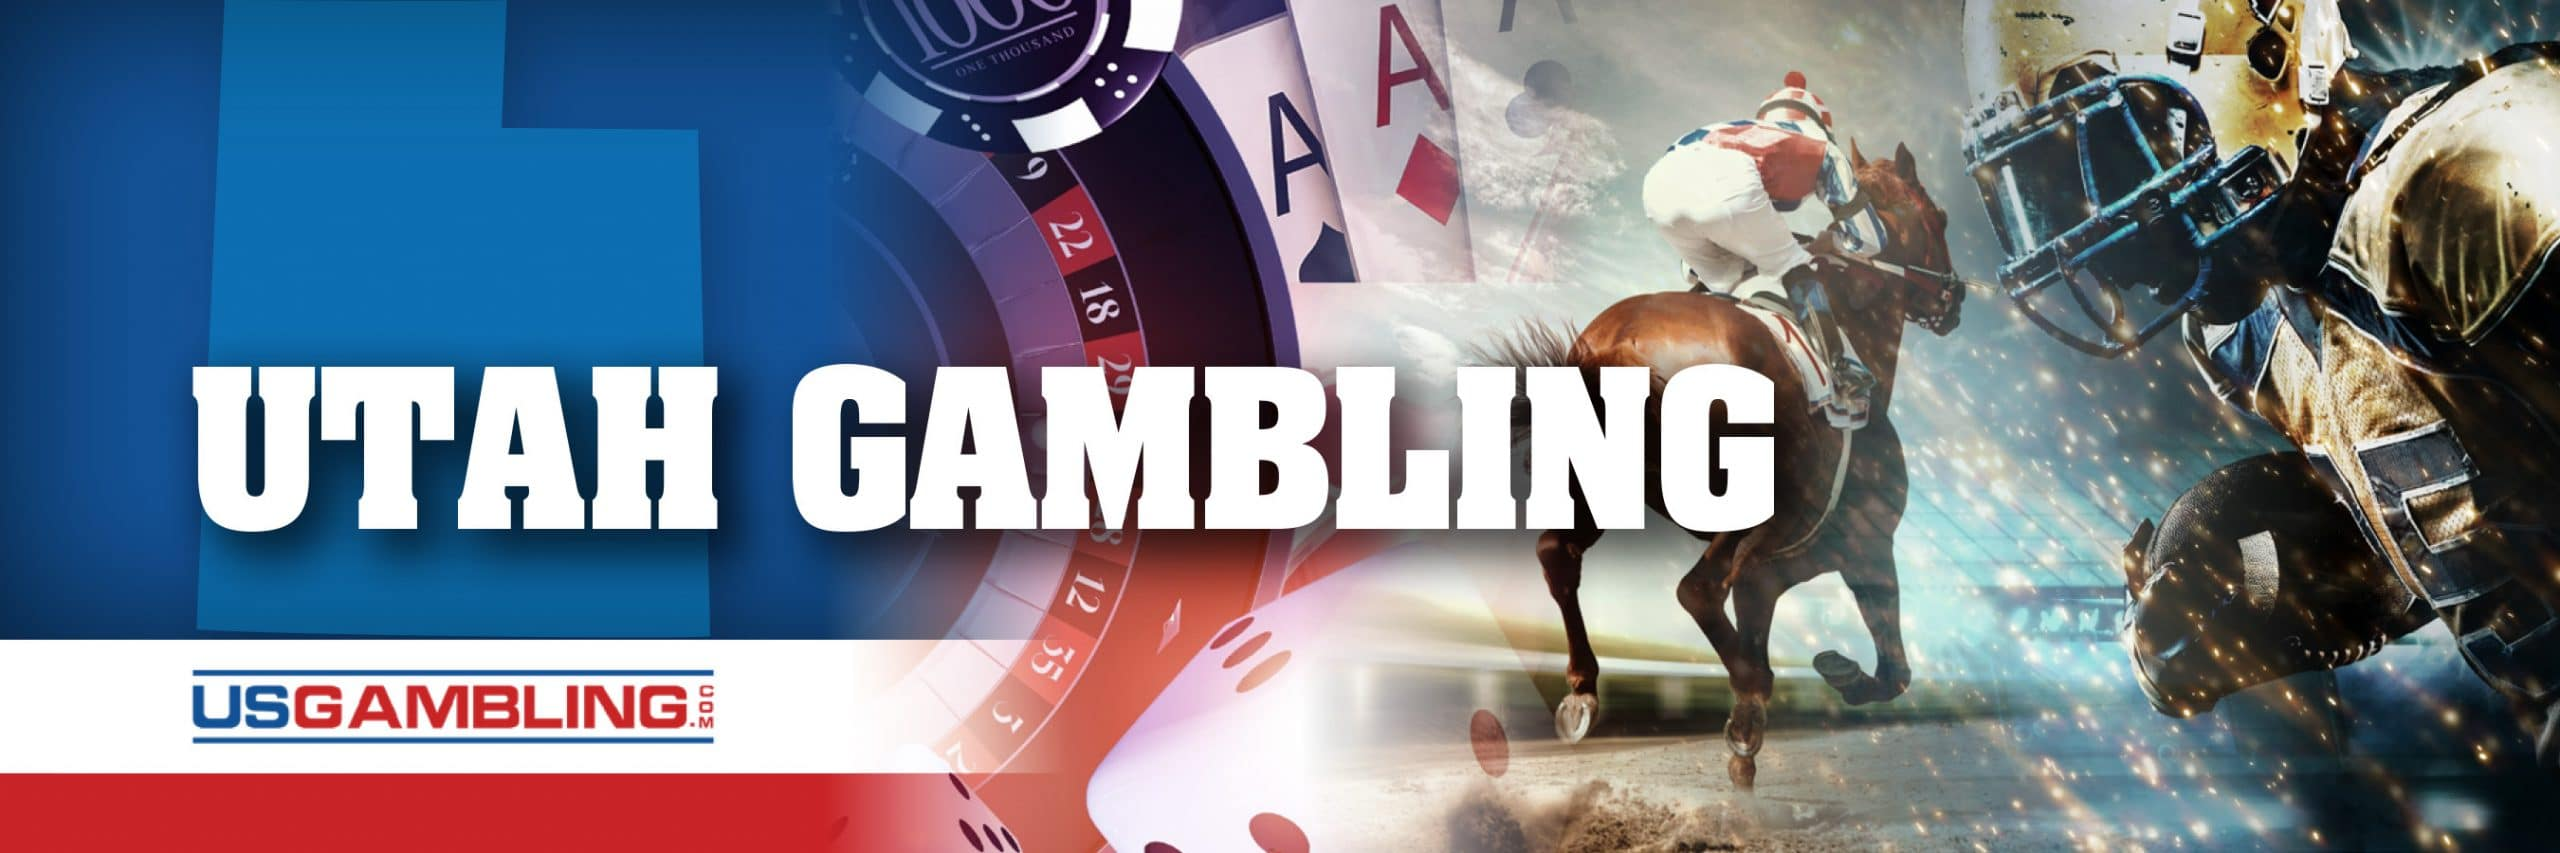 Legal Utah Gambling